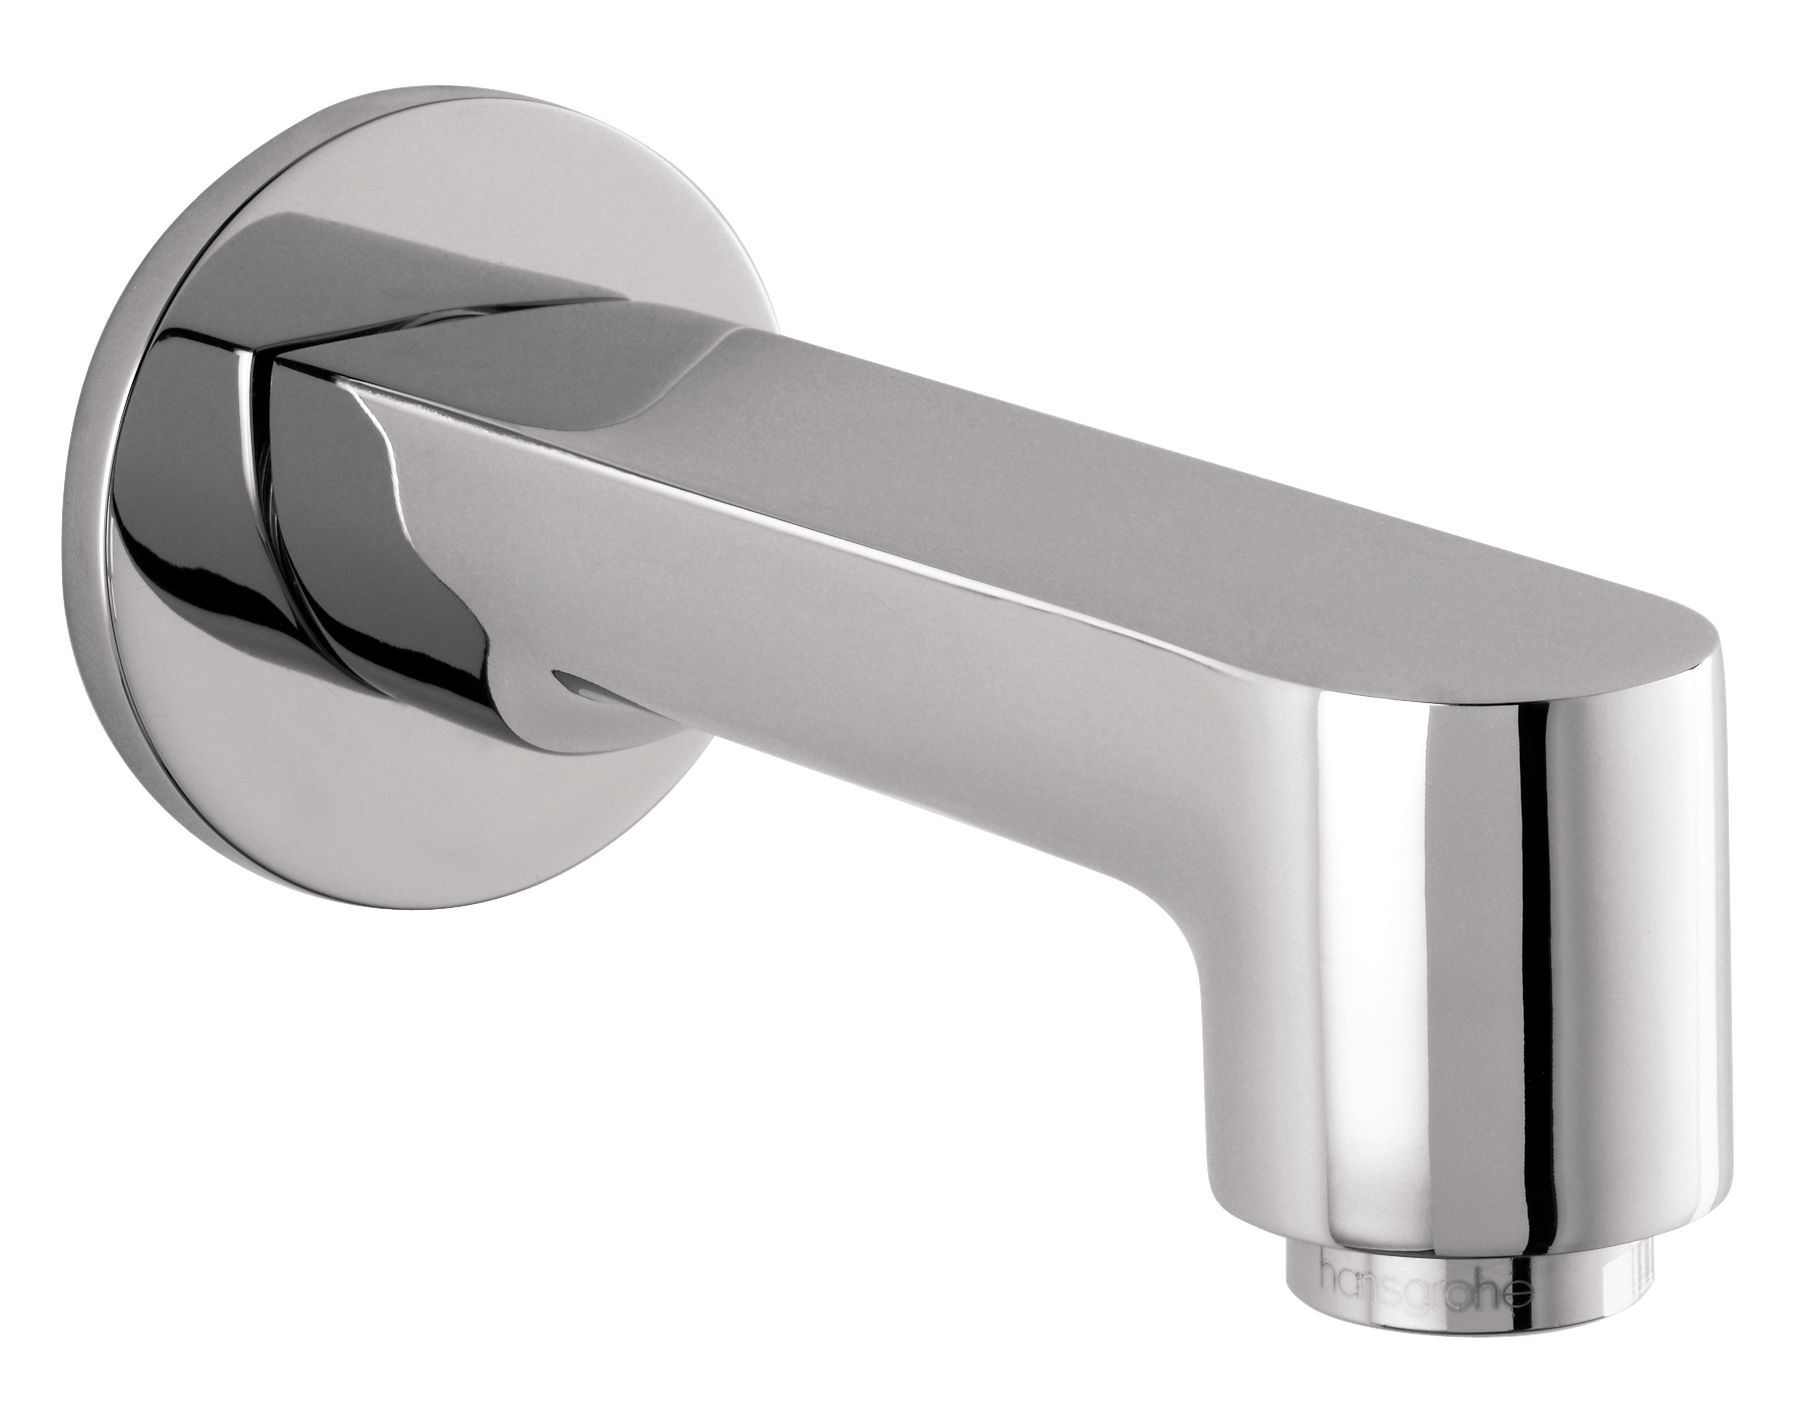 c faucets talis allegro costco faucet kitchen of hansgrohe lovely